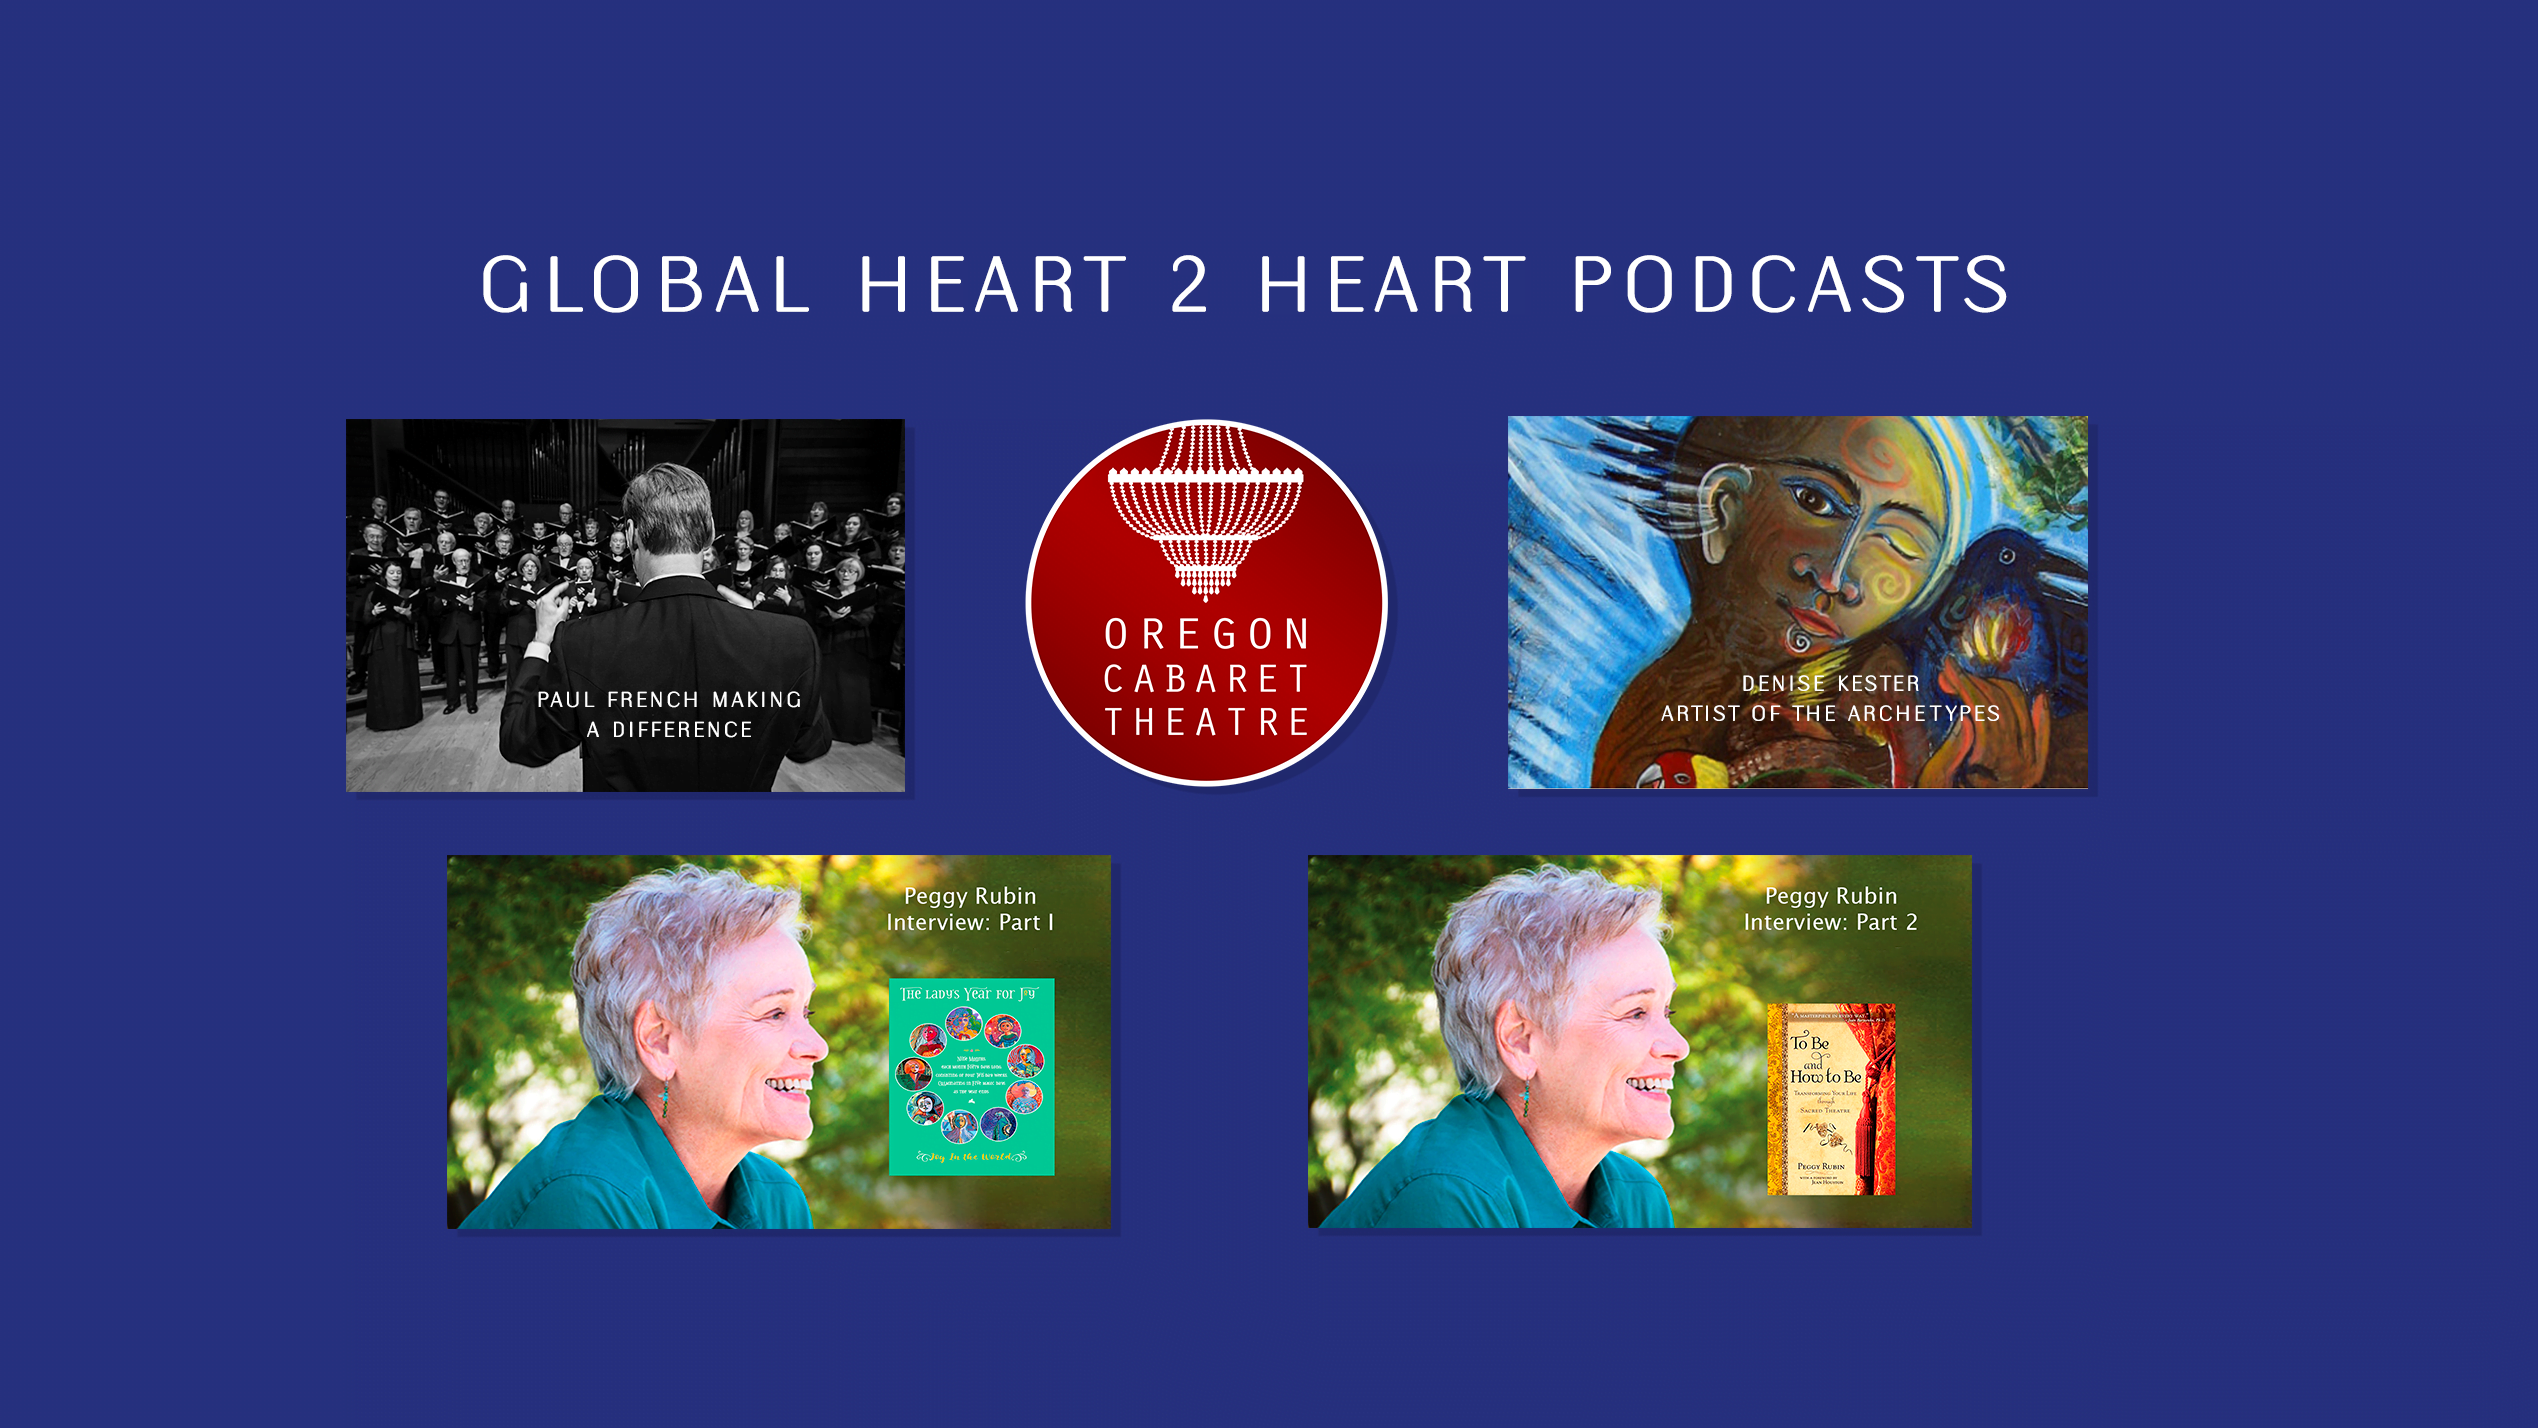 Global Heart 2 Heart Podcasts